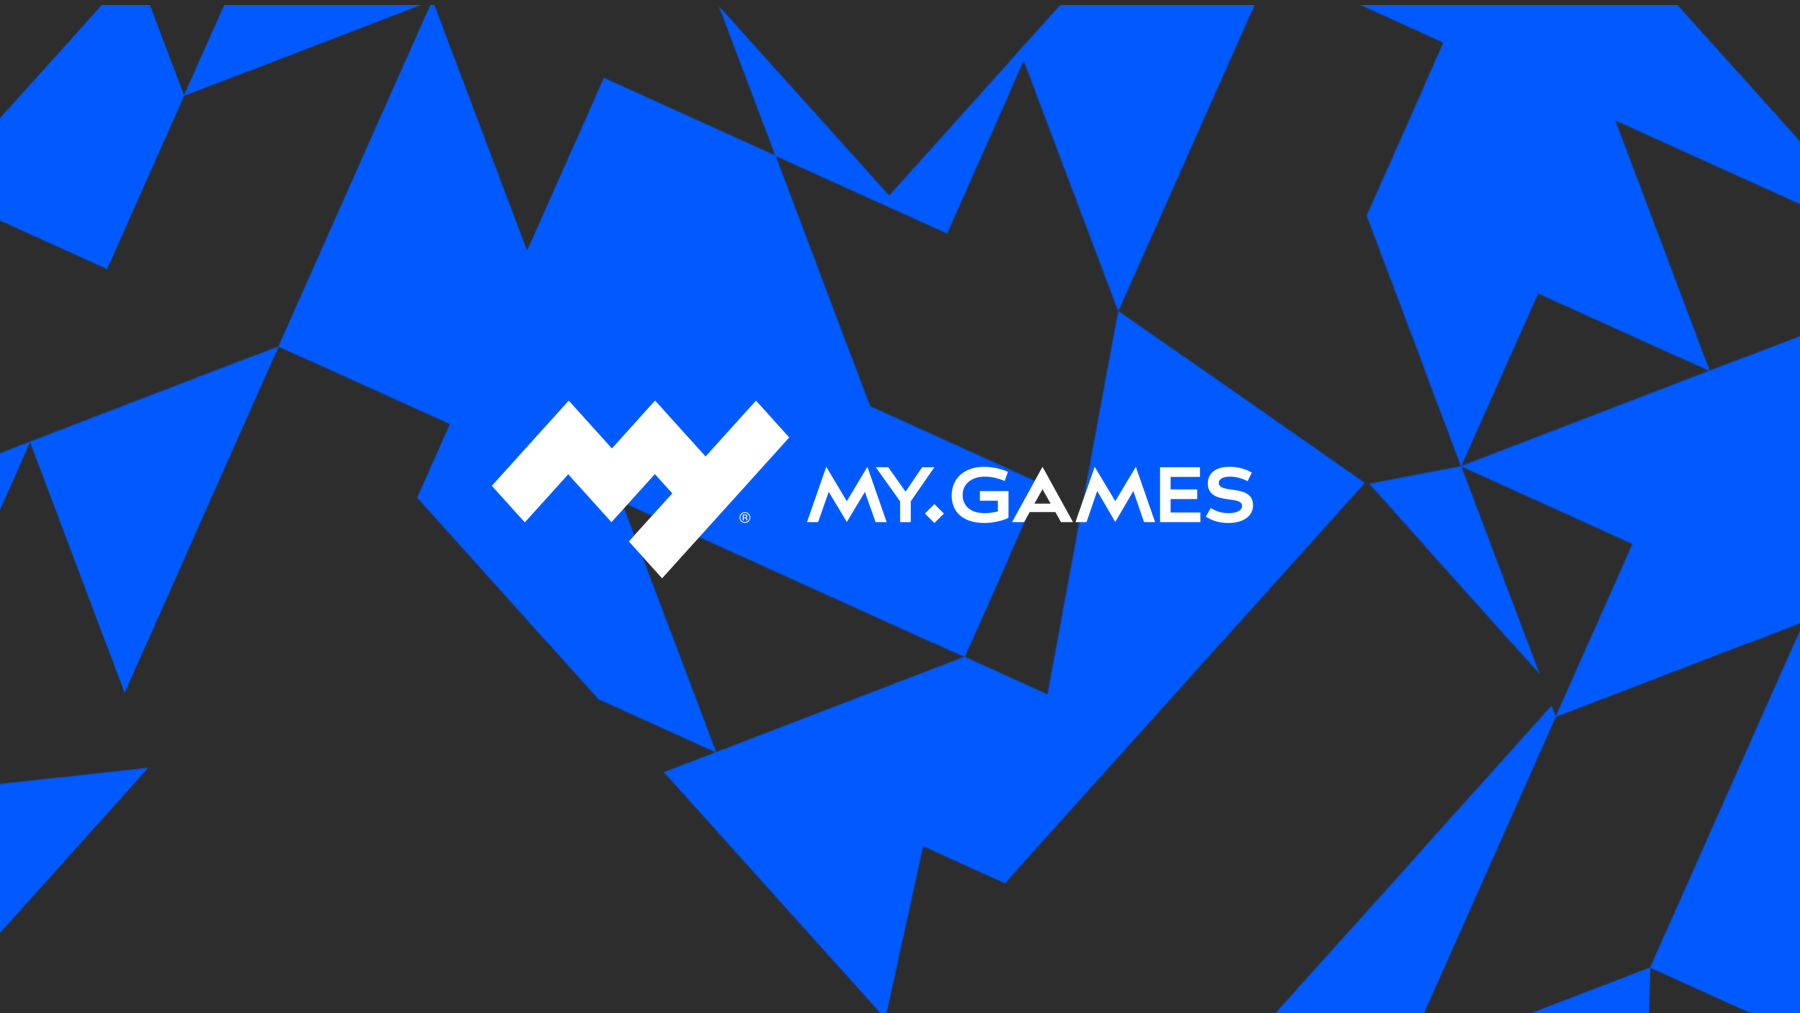 My.Games acquires hypercasual publisher Mamboo Games for over $2m